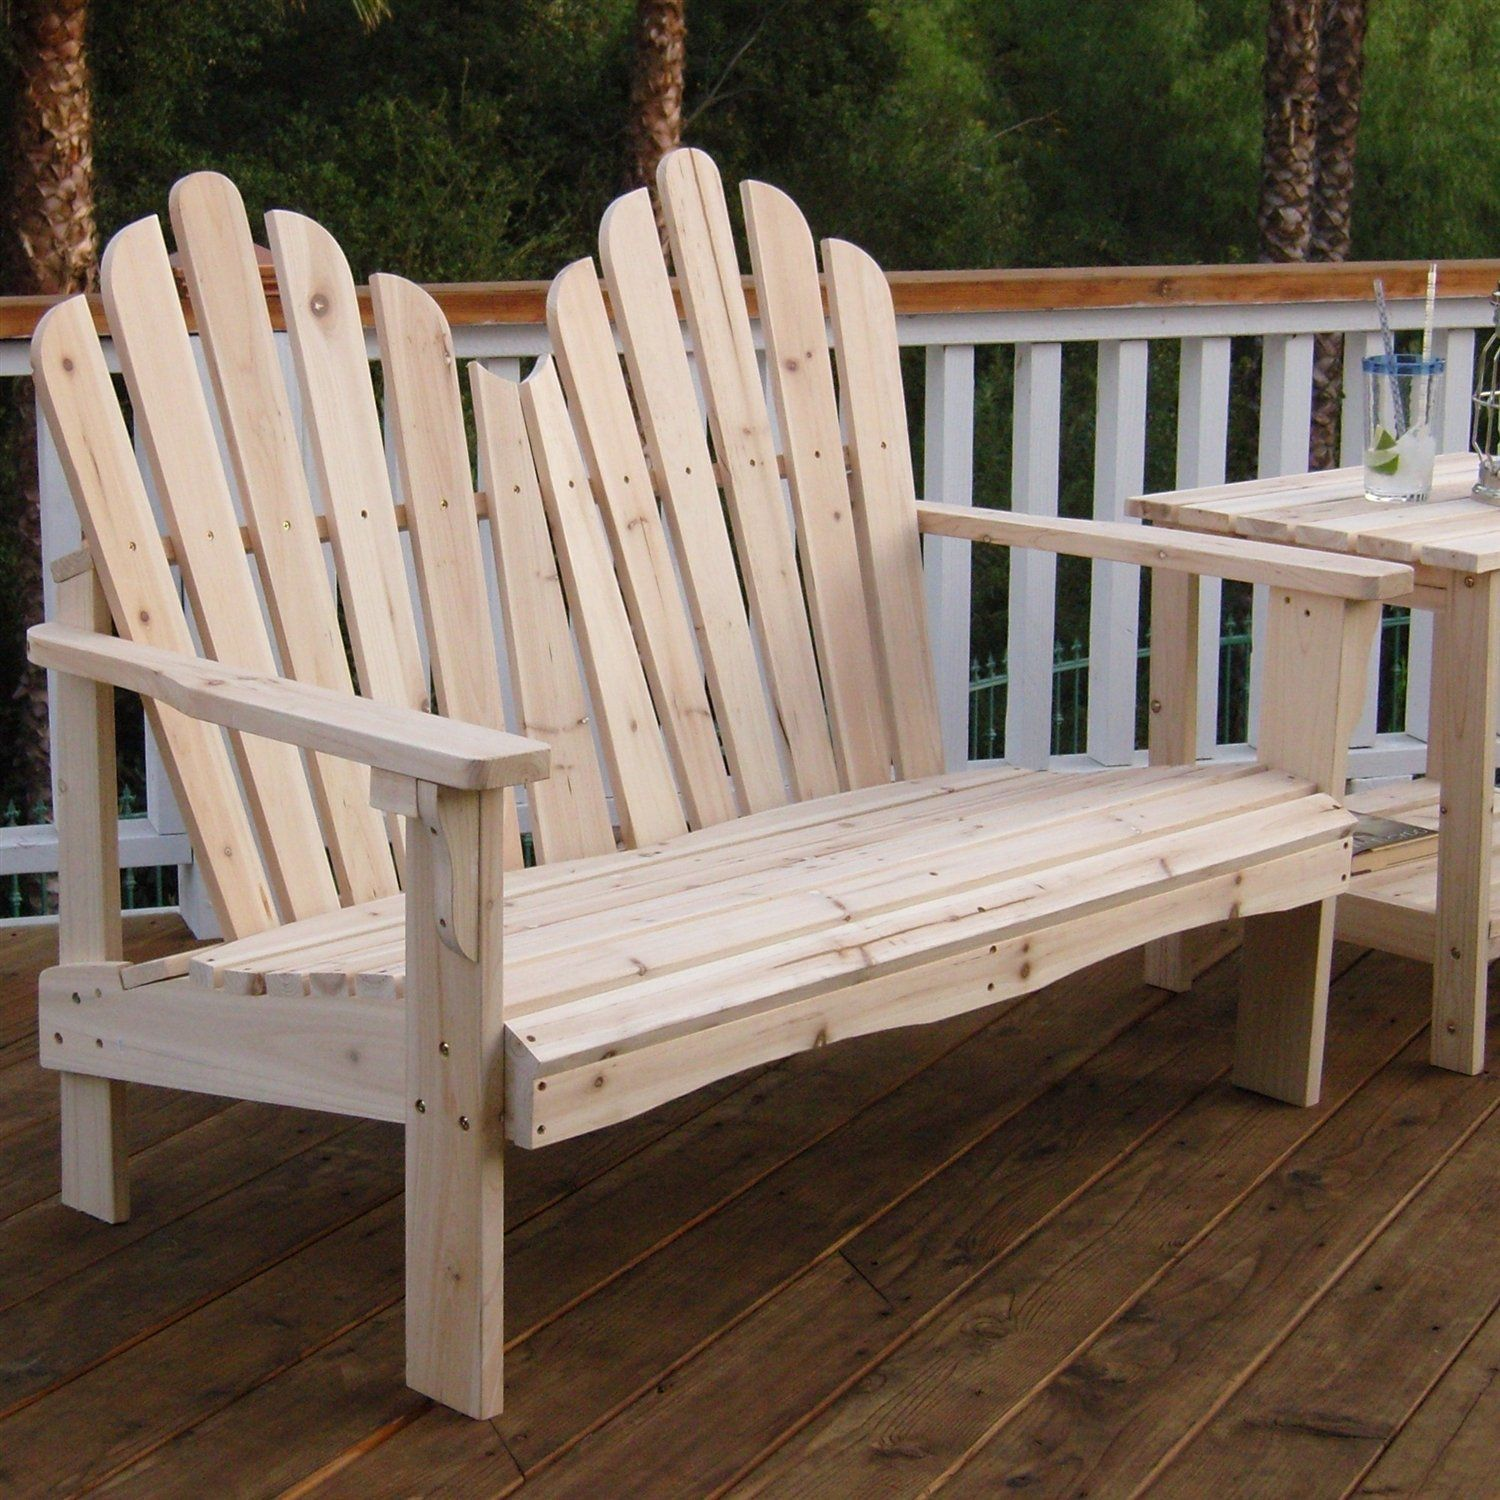 This 2 Seat Adirondack Style Outdoor Cedar Wood Garden Bench Would Be A Great Addition Garden In The Woods Wooden Garden Benches Outdoor Garden Bench